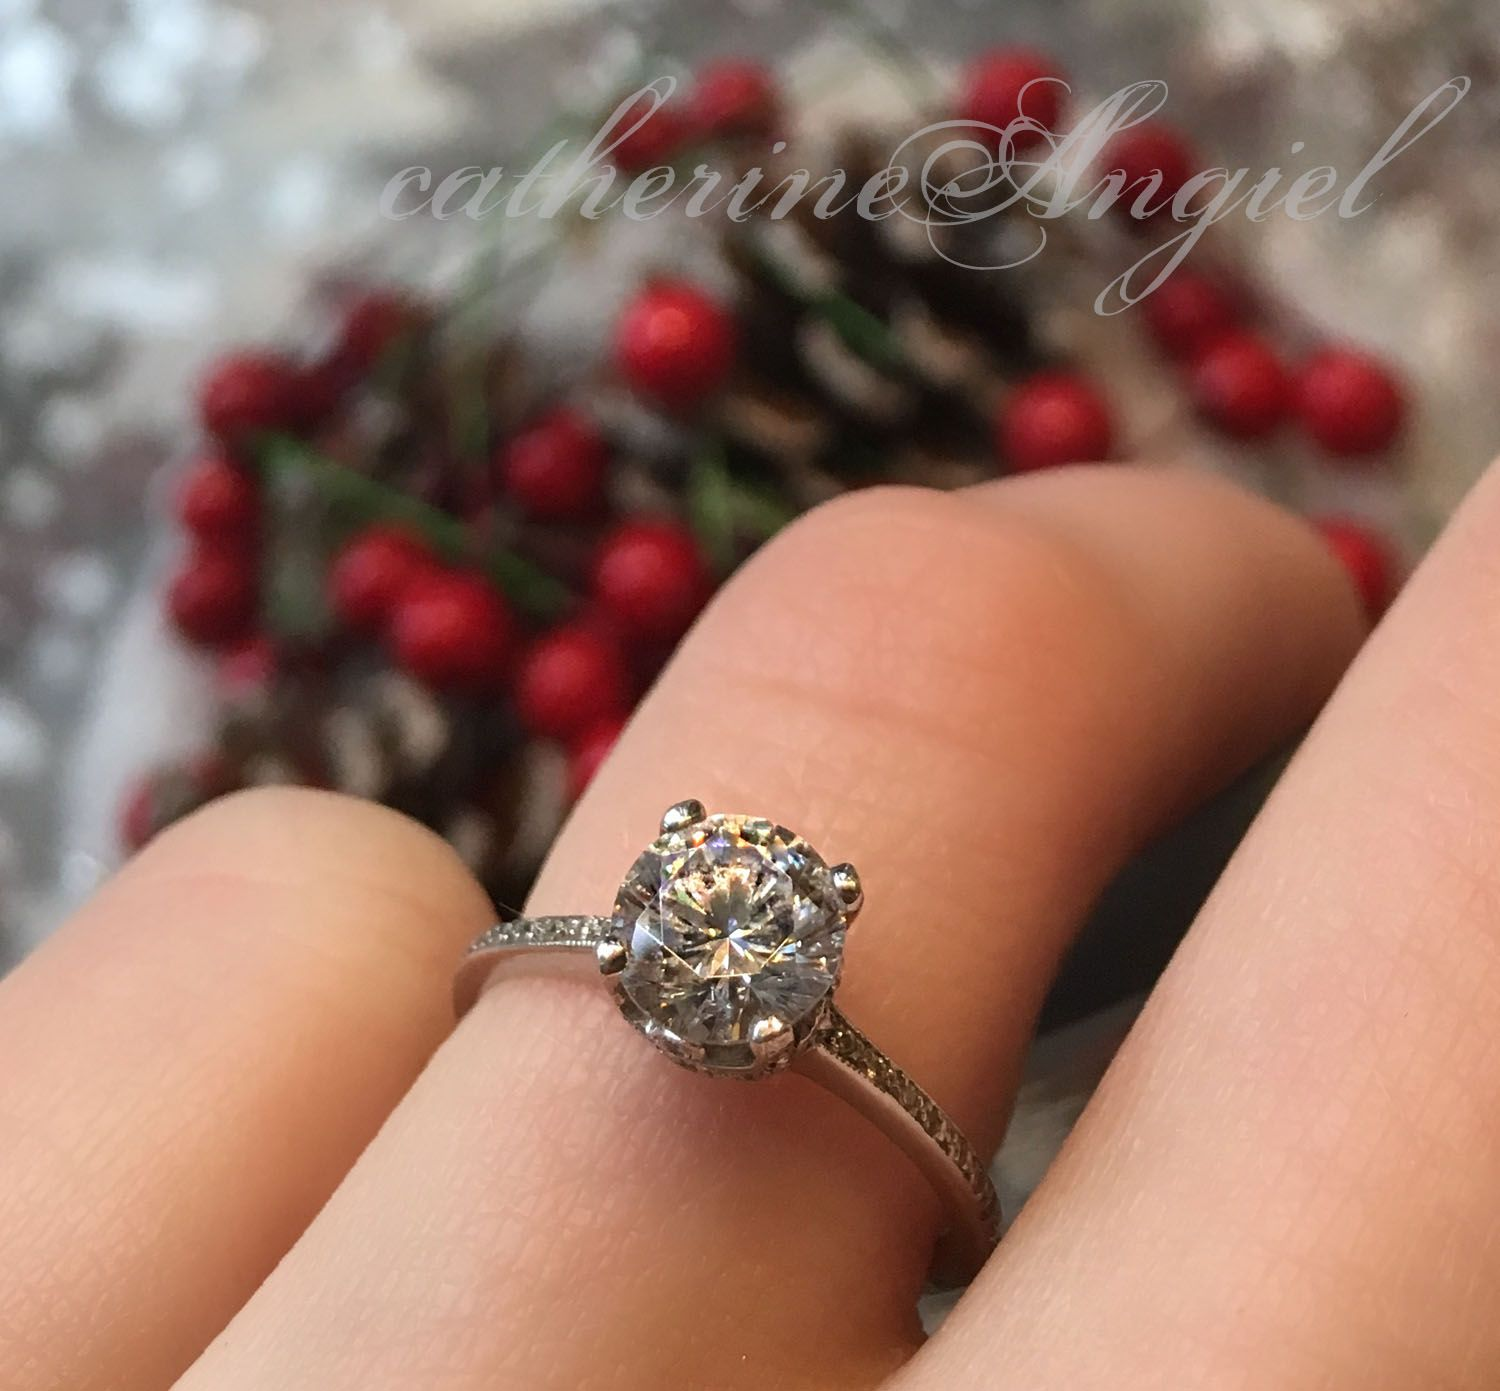 kates shop rings handcrafted francisco captures affordable photography first your bfw get stunning ethical custom wedding here jewelery engagement san women artist